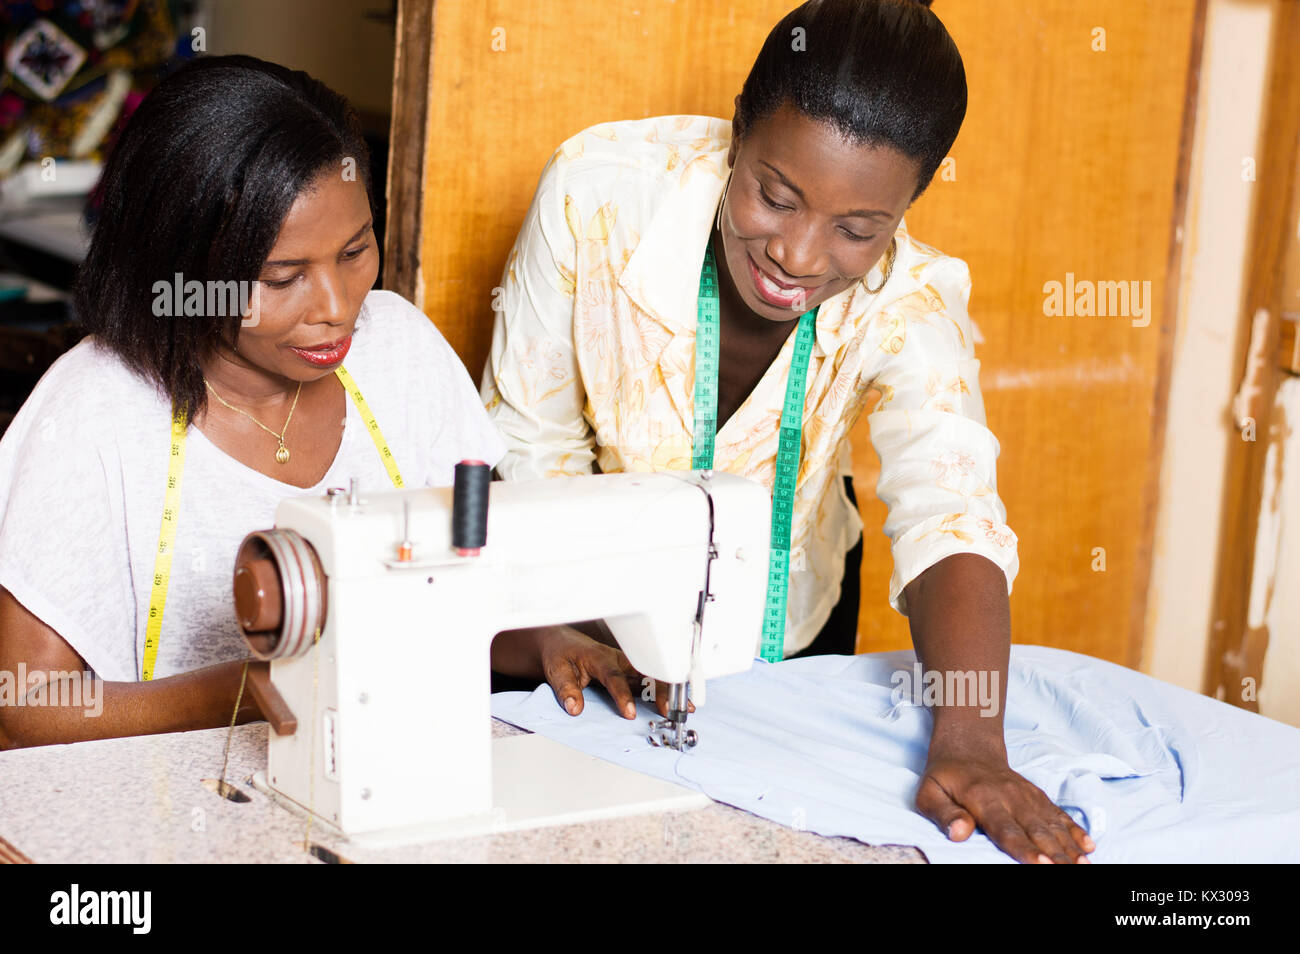 seamstress teaches her  students how to put a shirt under the needle of a sewing machine. - Stock Image